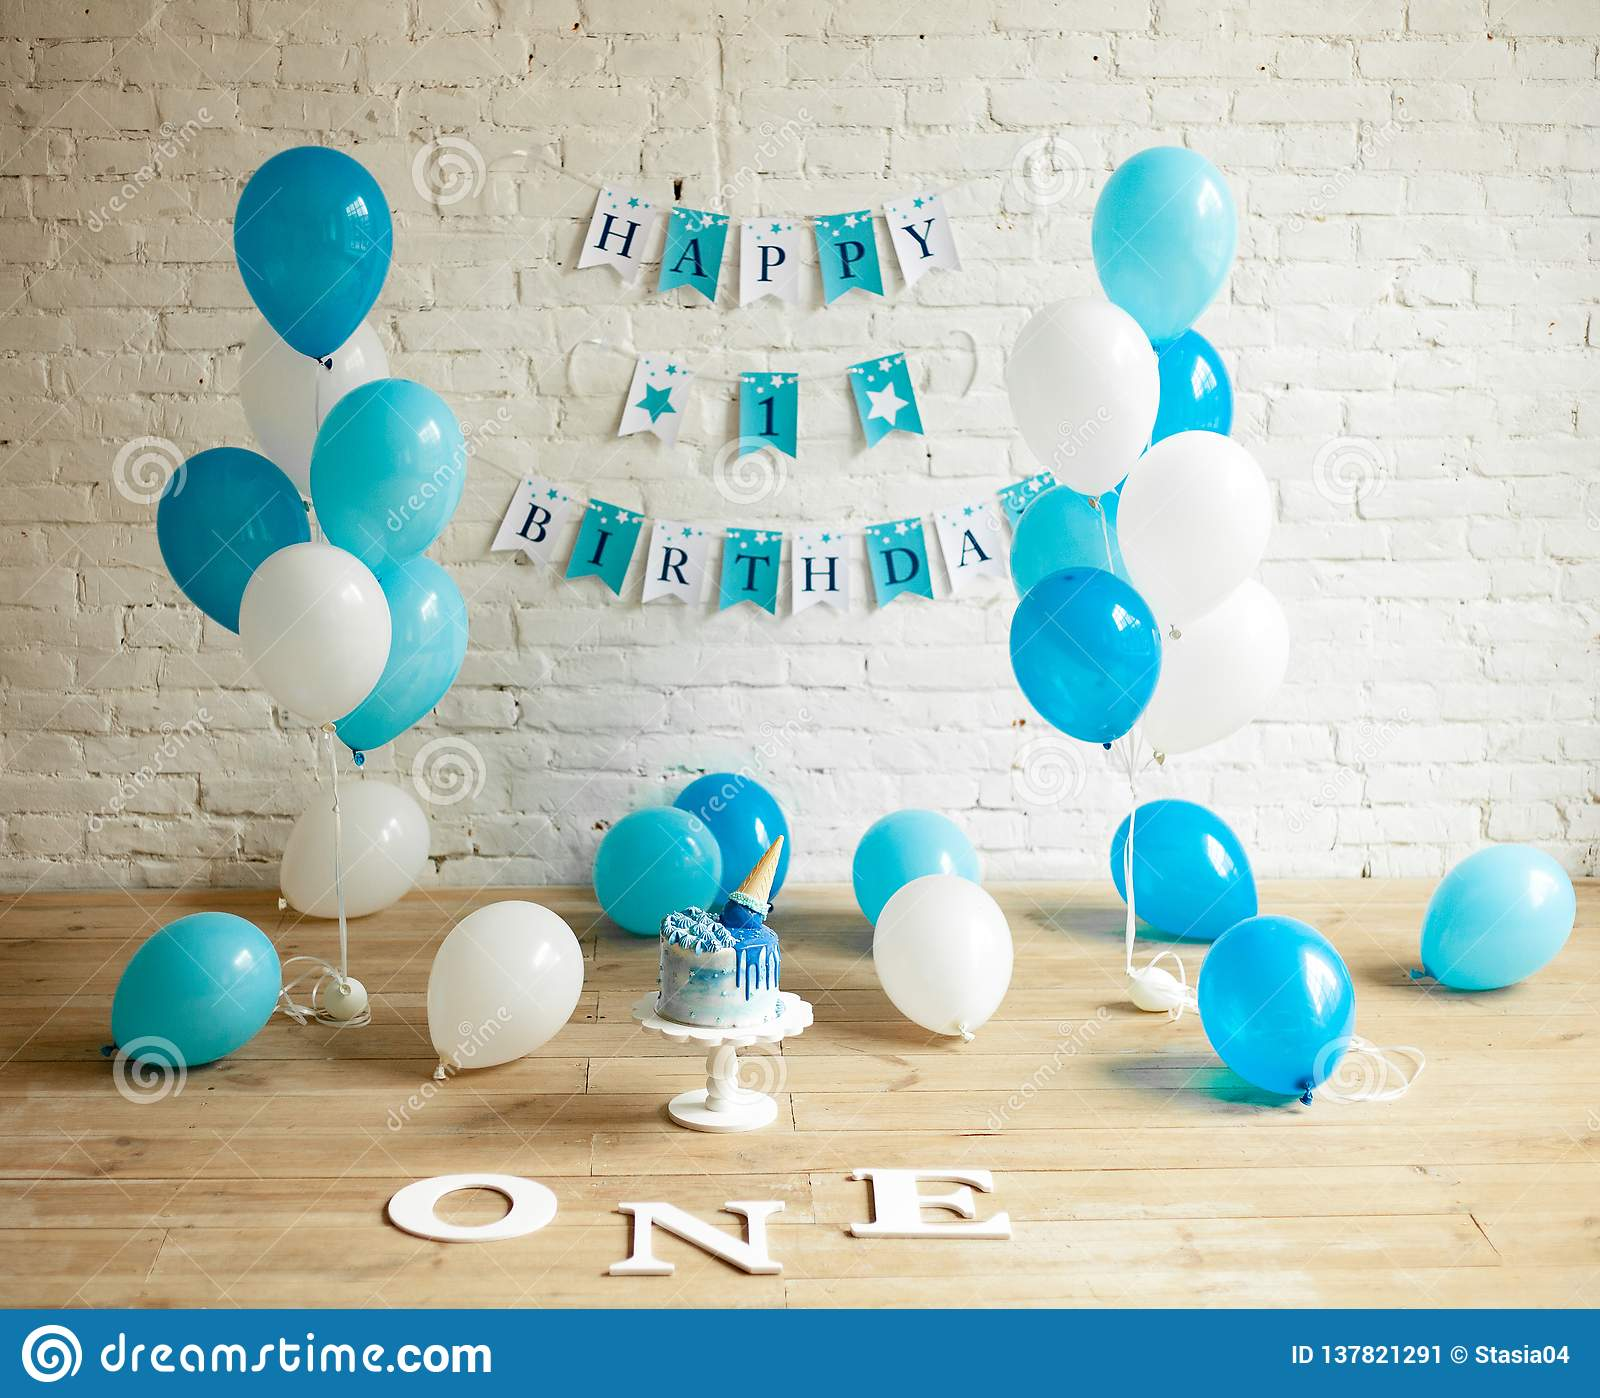 Decorations for one year birthday with balloons, cake and inscriptions on wall and floor